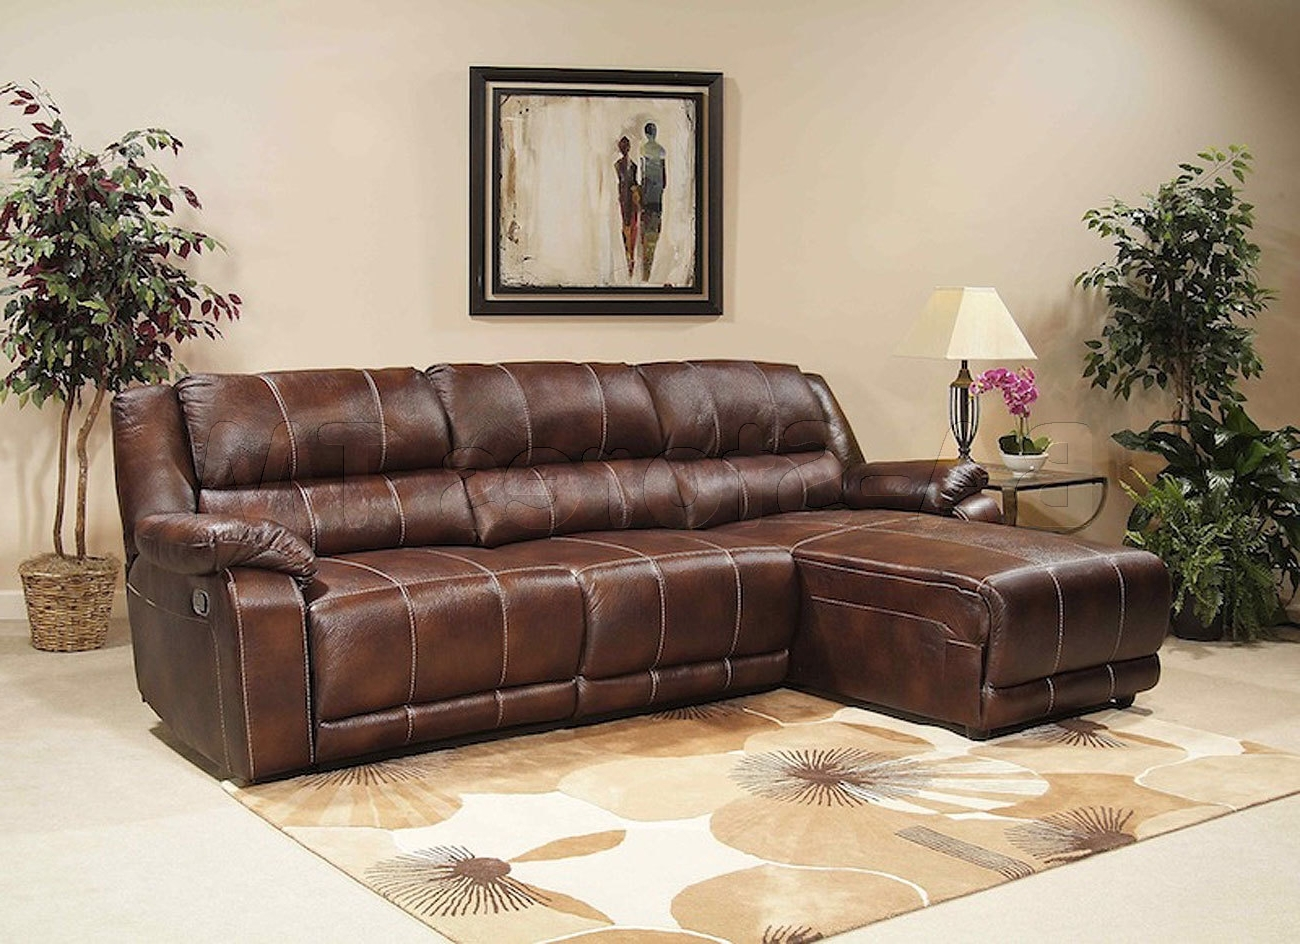 Reclining Chaises Throughout Recent Sectional Sofa Design: Affordabale Sectional Reclining Sofa With (View 12 of 15)